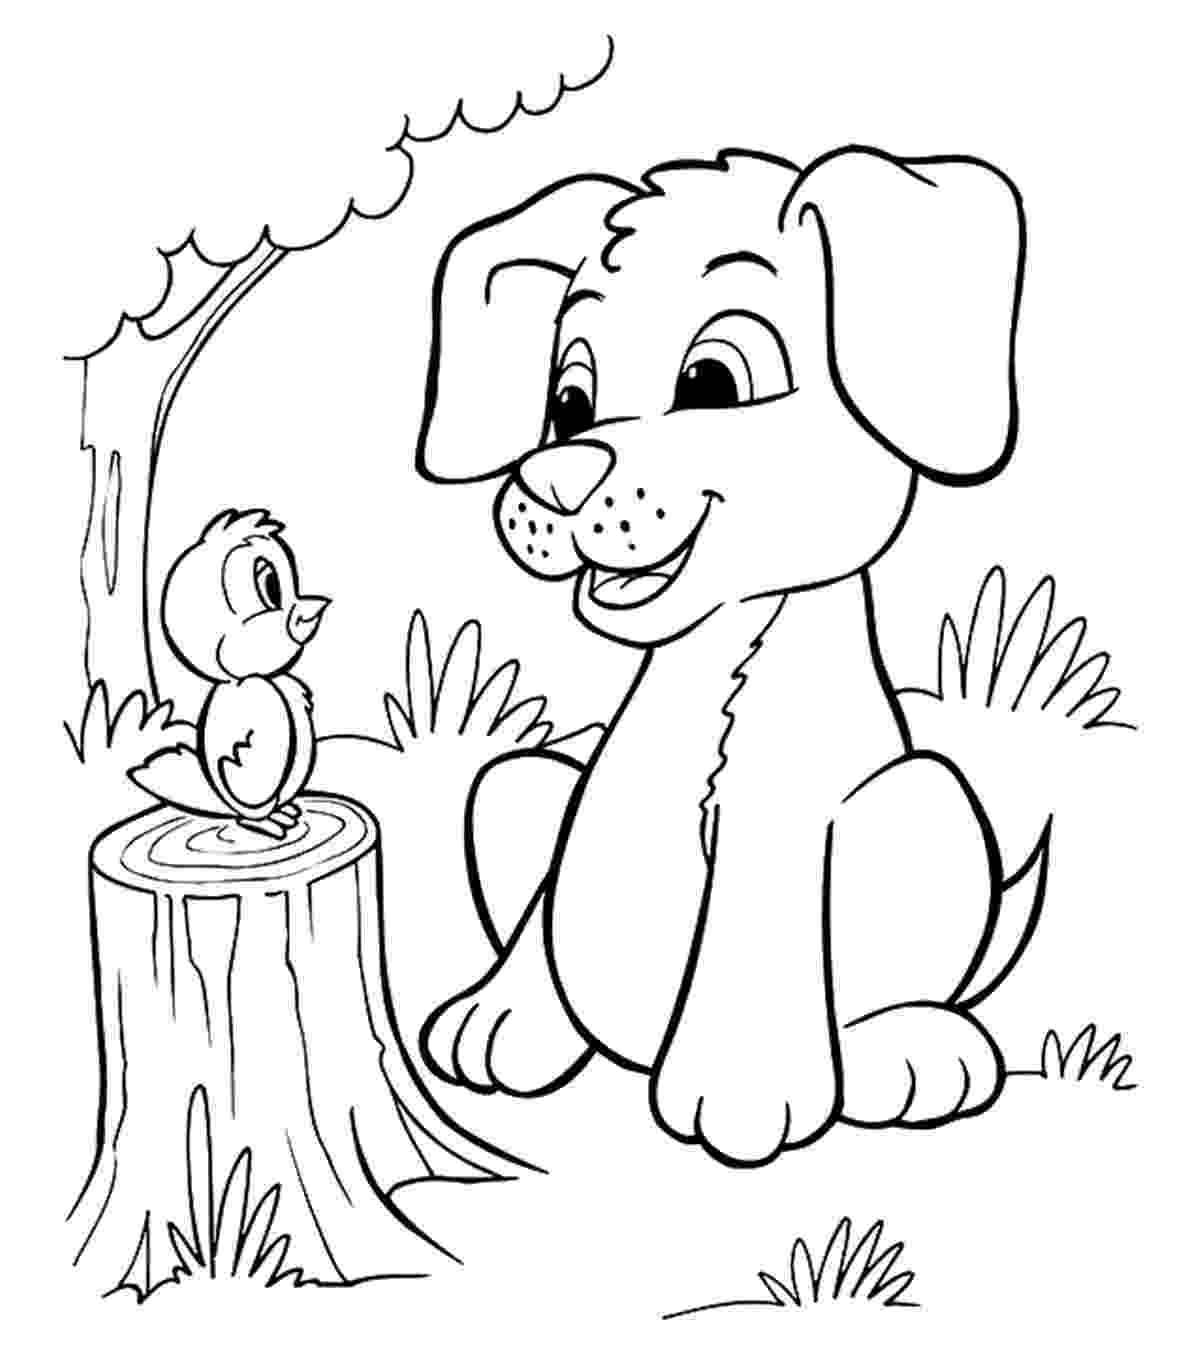 coloring pages to print dogs puppy coloring pages best coloring pages for kids print pages to coloring dogs